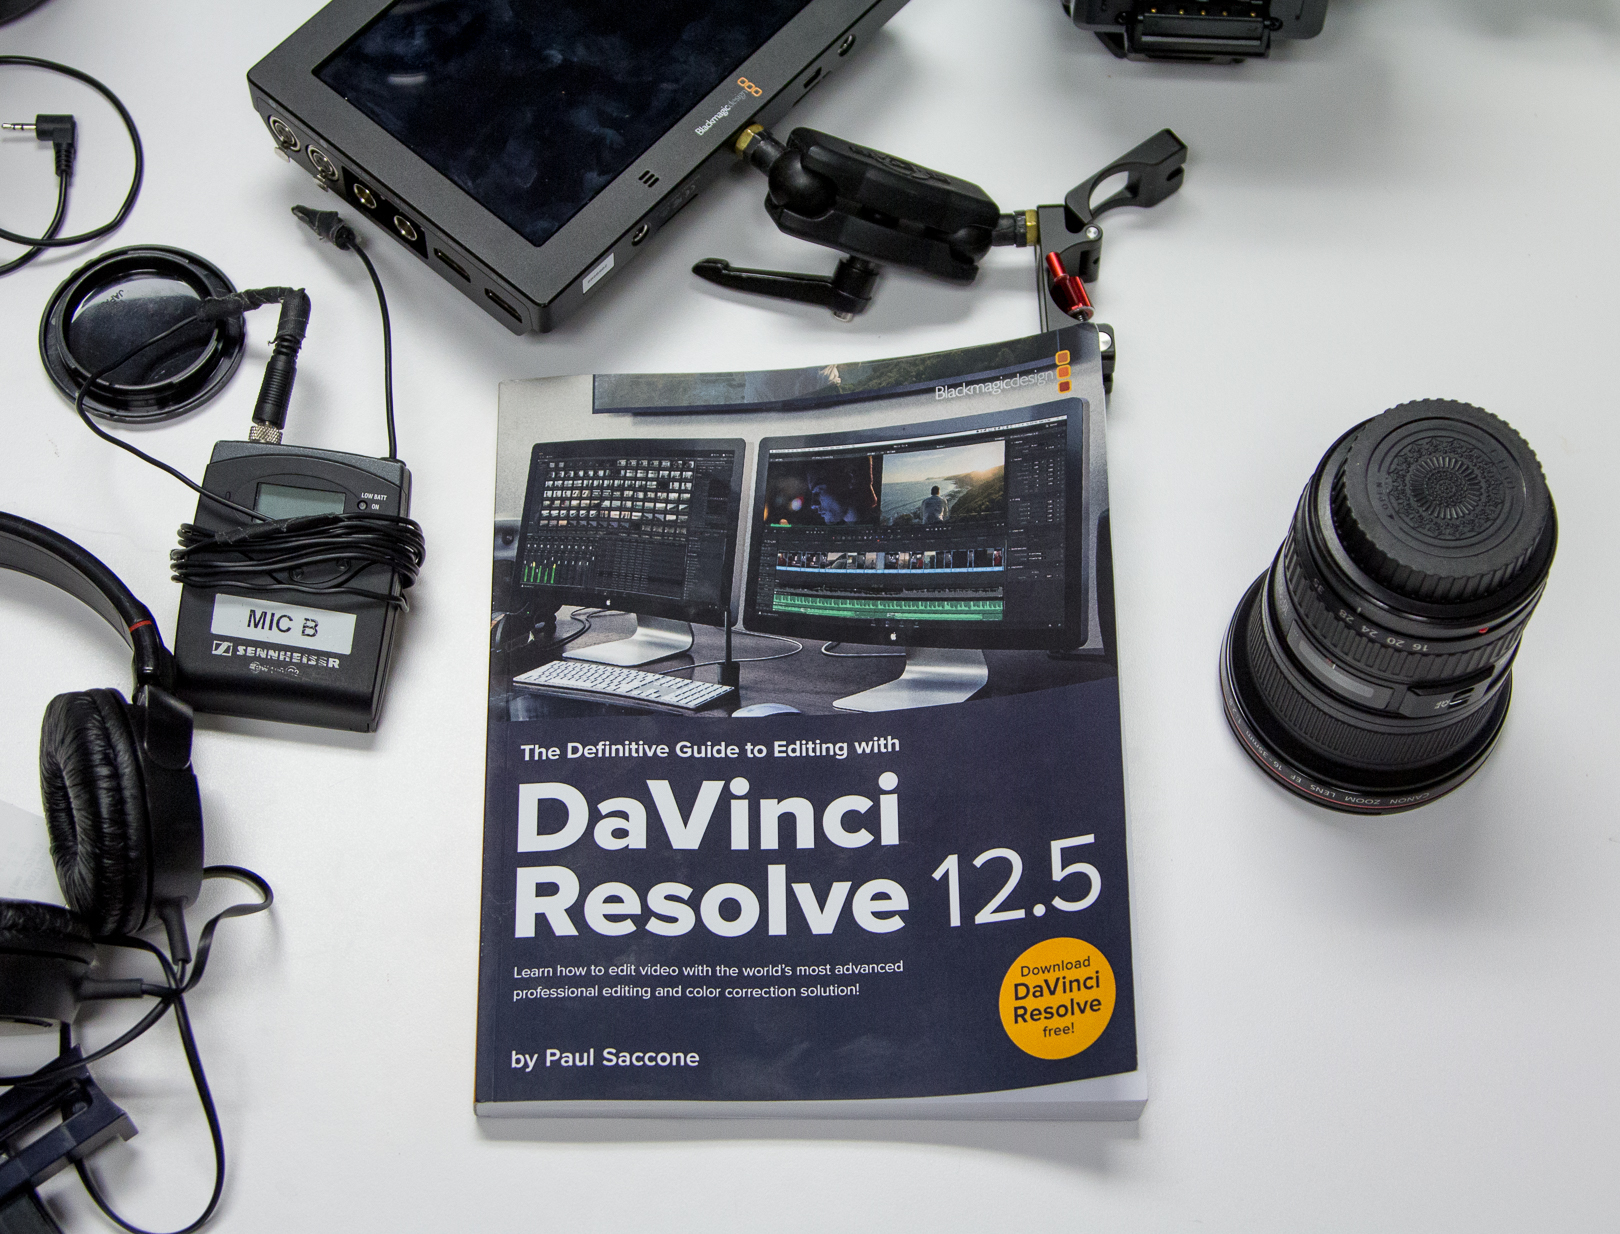 DaVinci Resolve 12.5 Editing Book Review